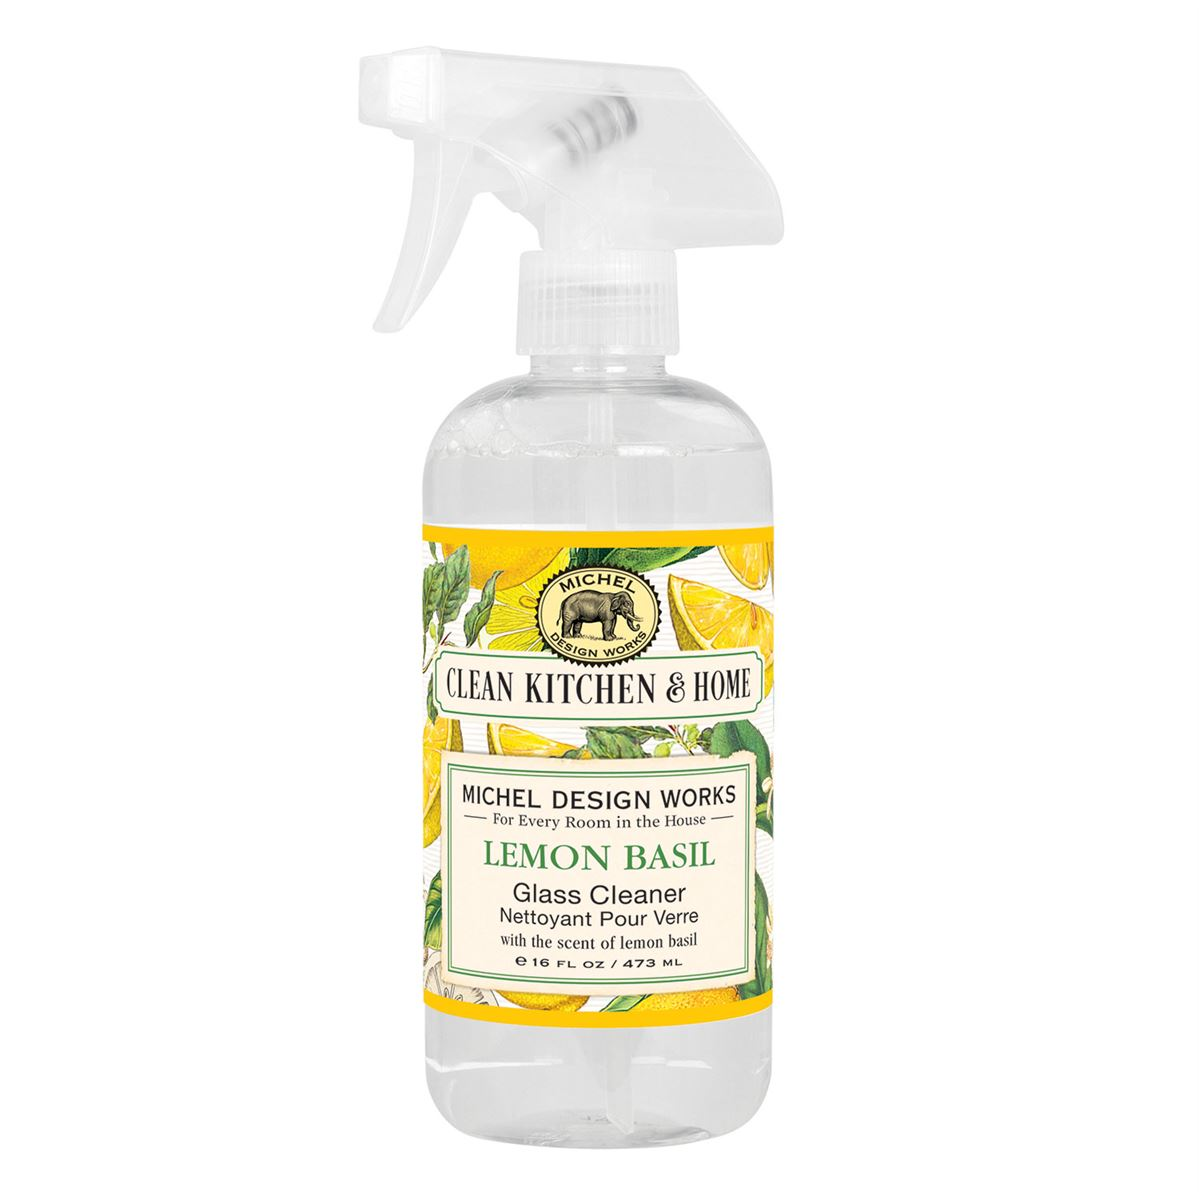 Spray-on cleaner scented in lemon basil that is perfect for glass, but it is also makes tile, chrome, and mirrored surfaces shine. Just use with a clean, non-linting cloth or a paper towel.